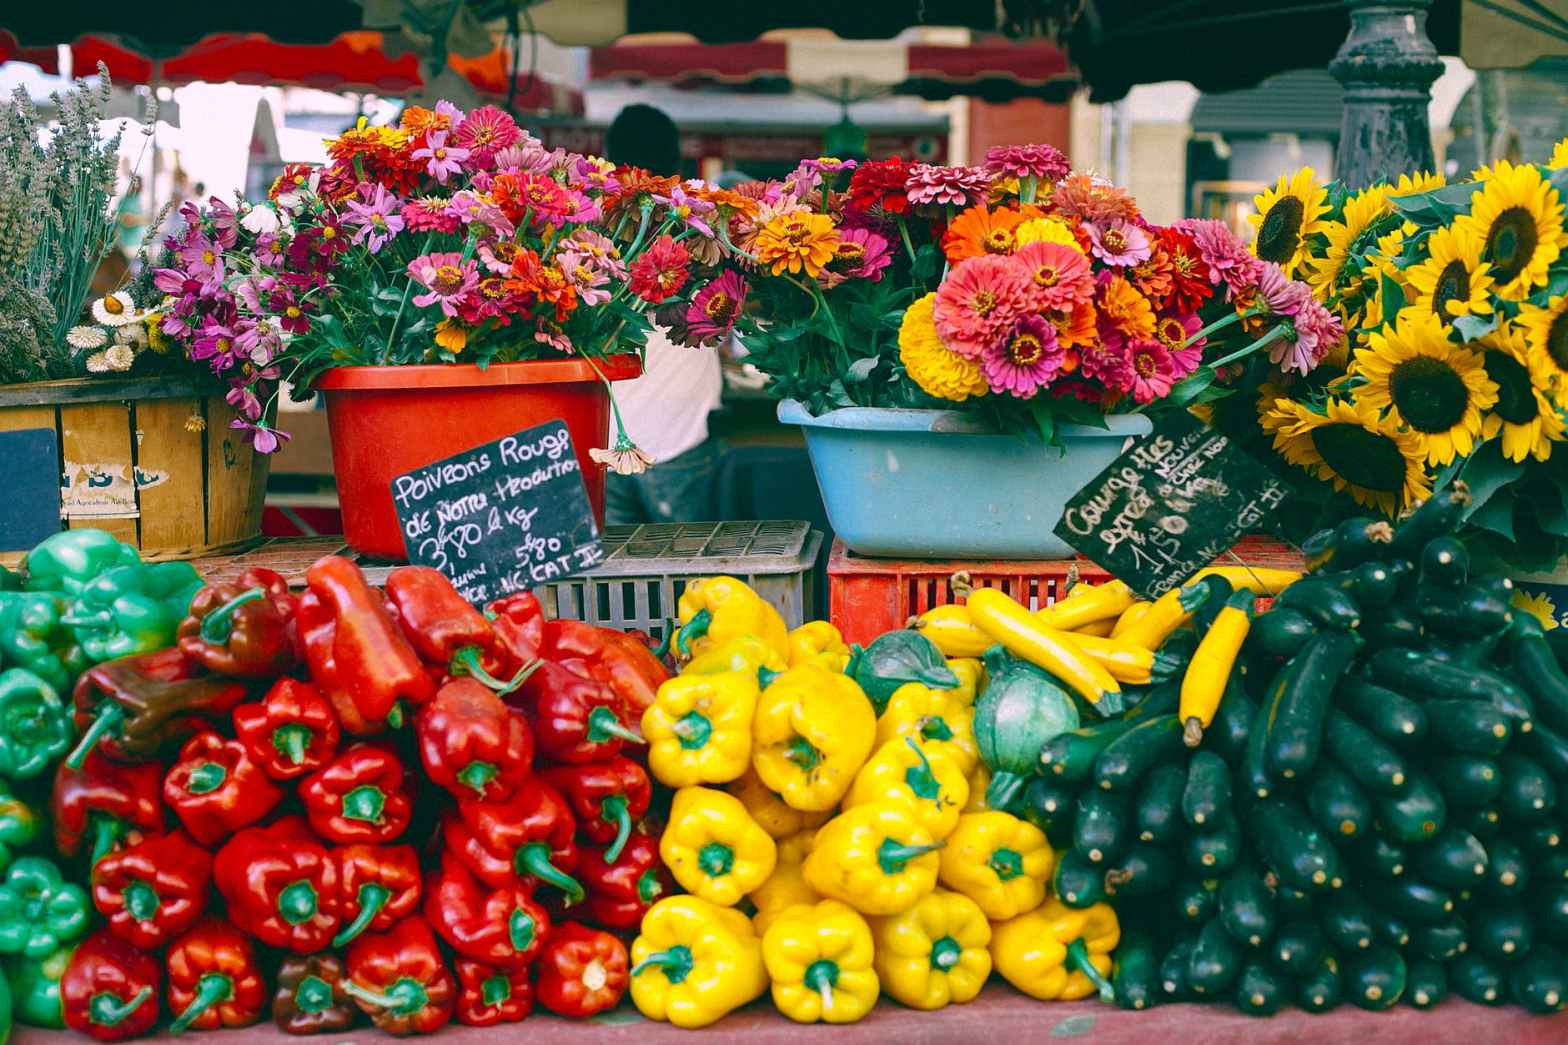 assorted vegetables and blooming flowers at market